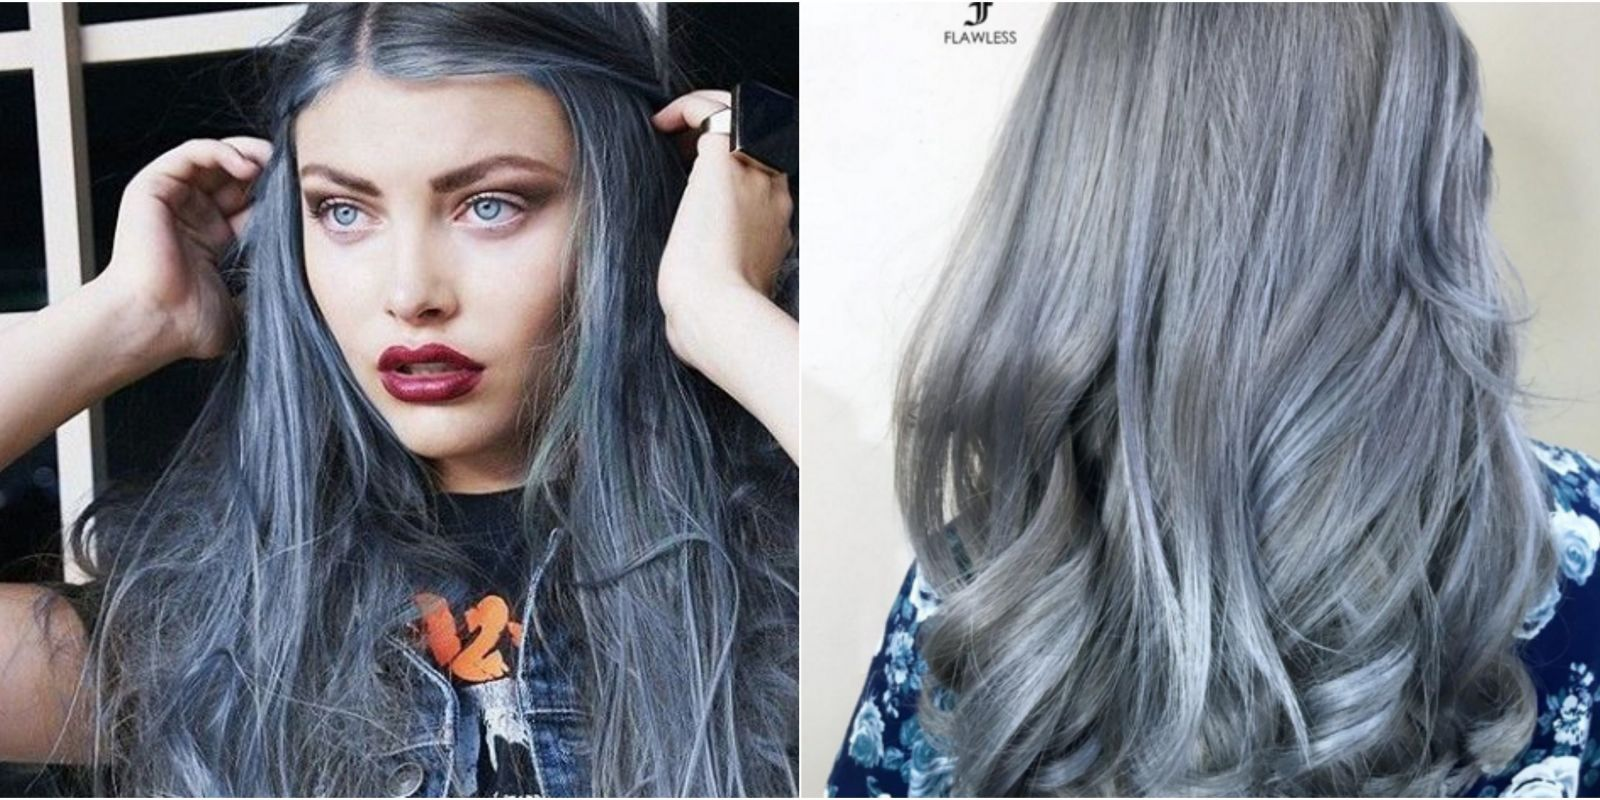 Denim hair is the coolest new color trend denim hair color